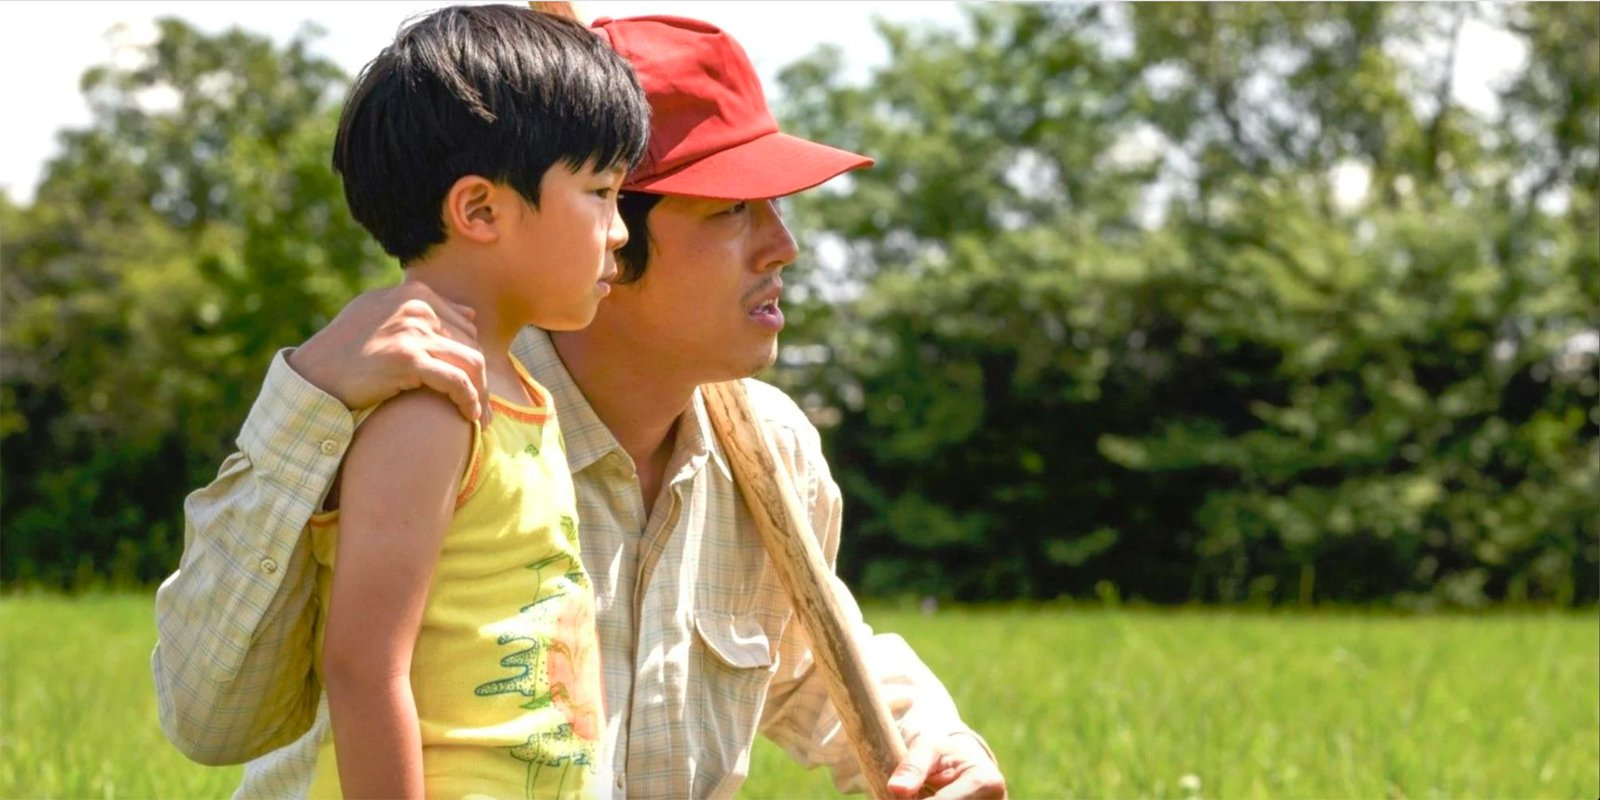 A still from the film Minari of a Korean American father and son. (Still courtesy of A24)